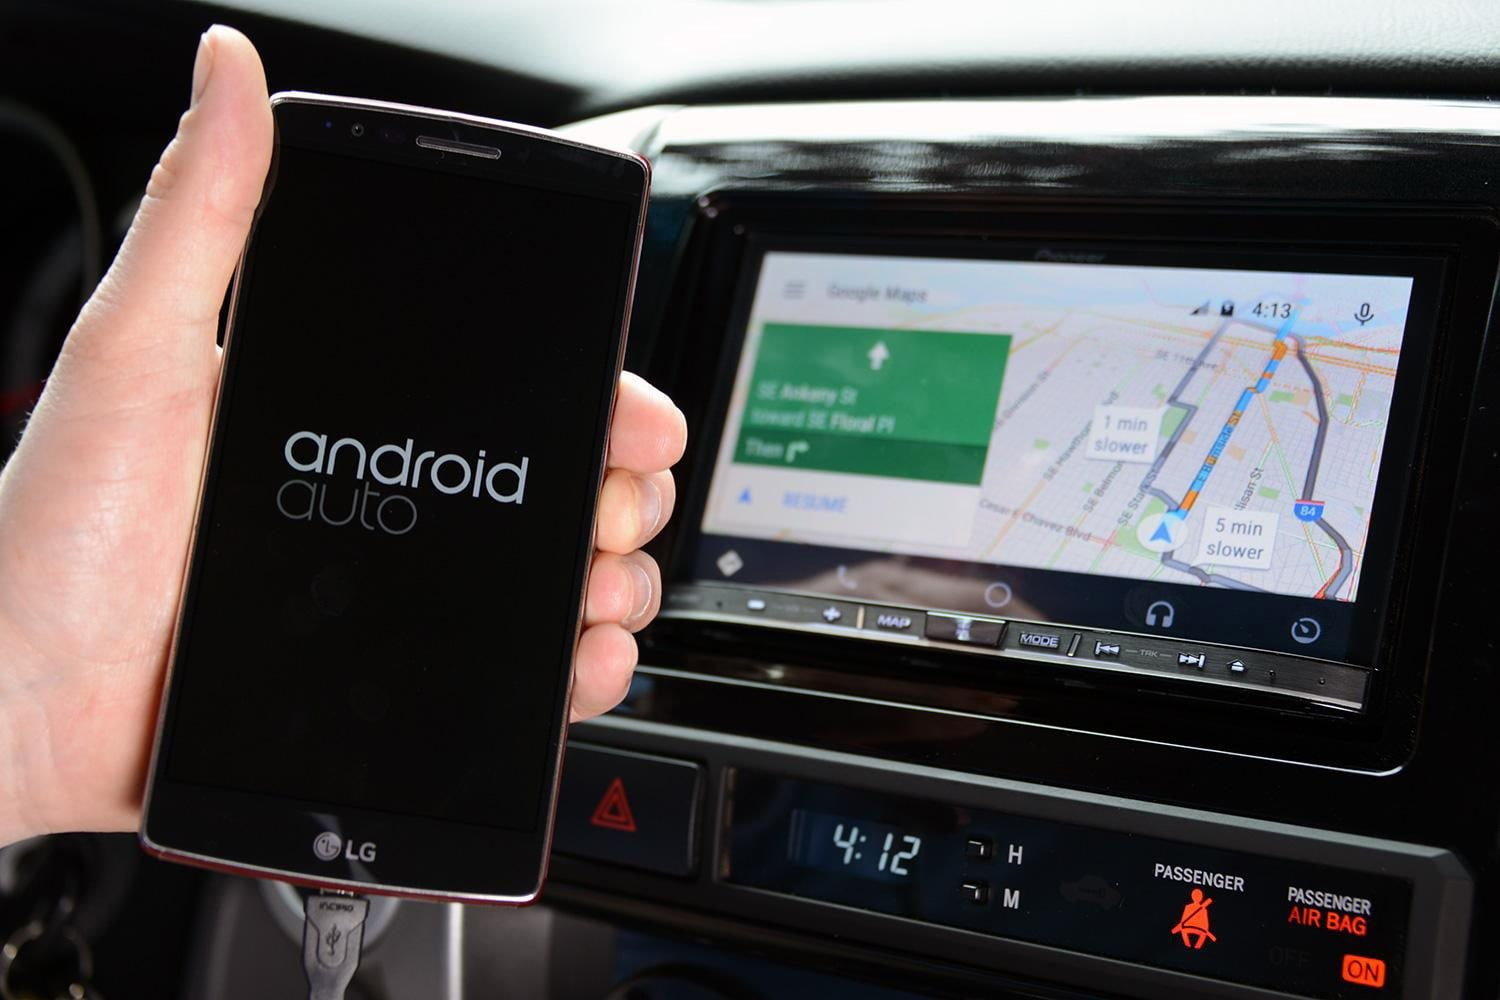 Adding Android Auto to an old car